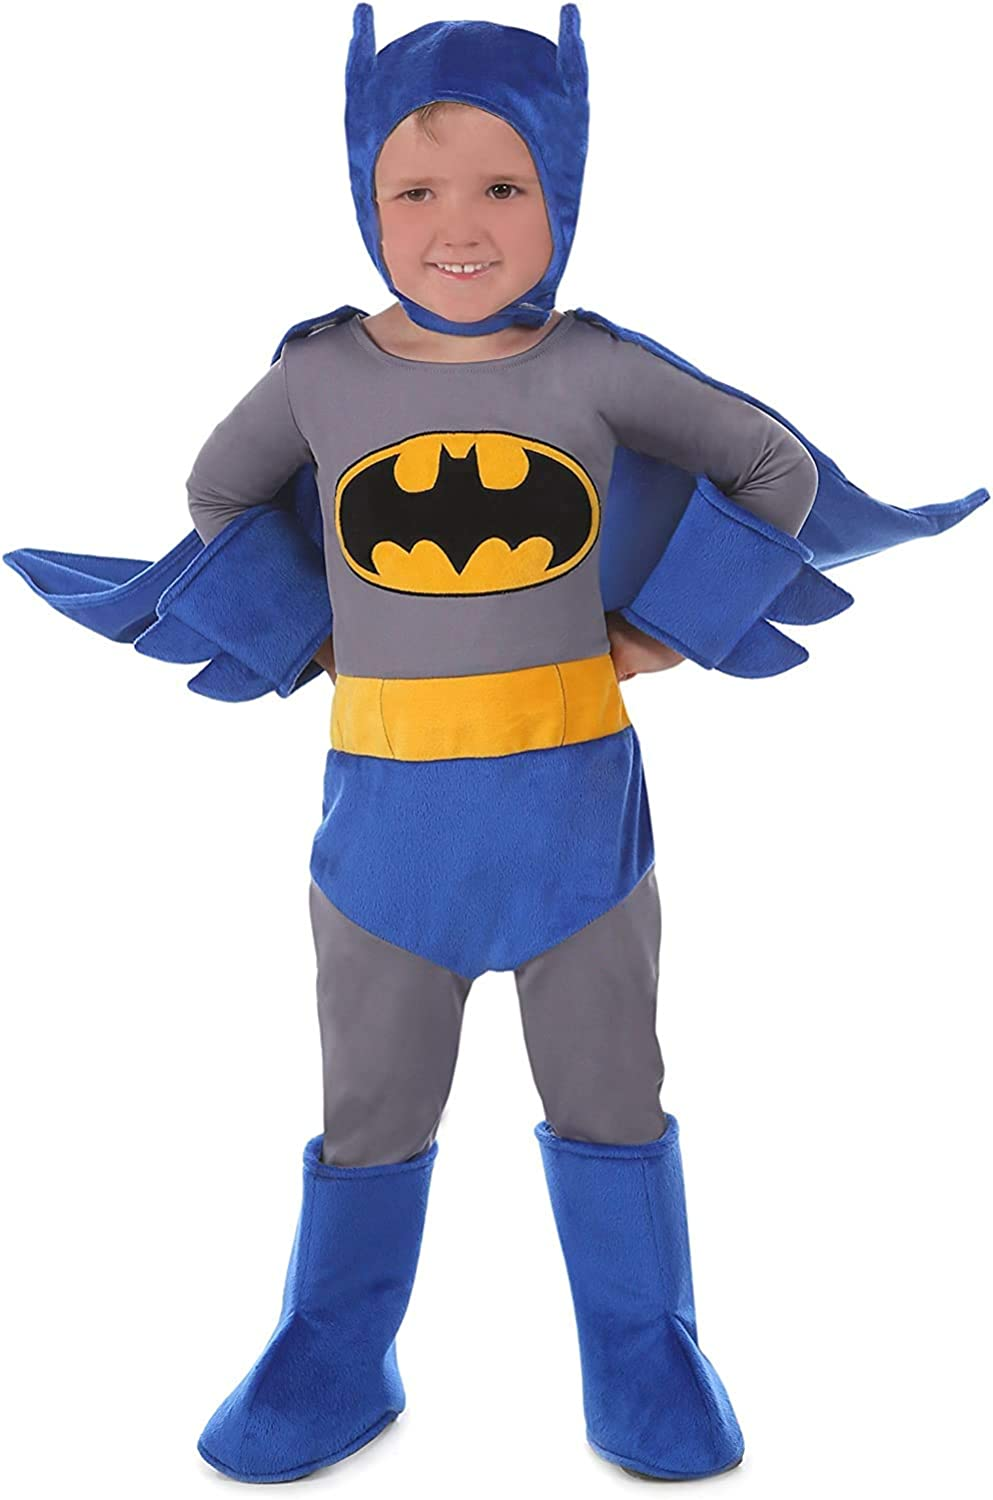 Princess Paradise Baby At the price of Fashionable surprise Boys' Batman Cuddly Costume